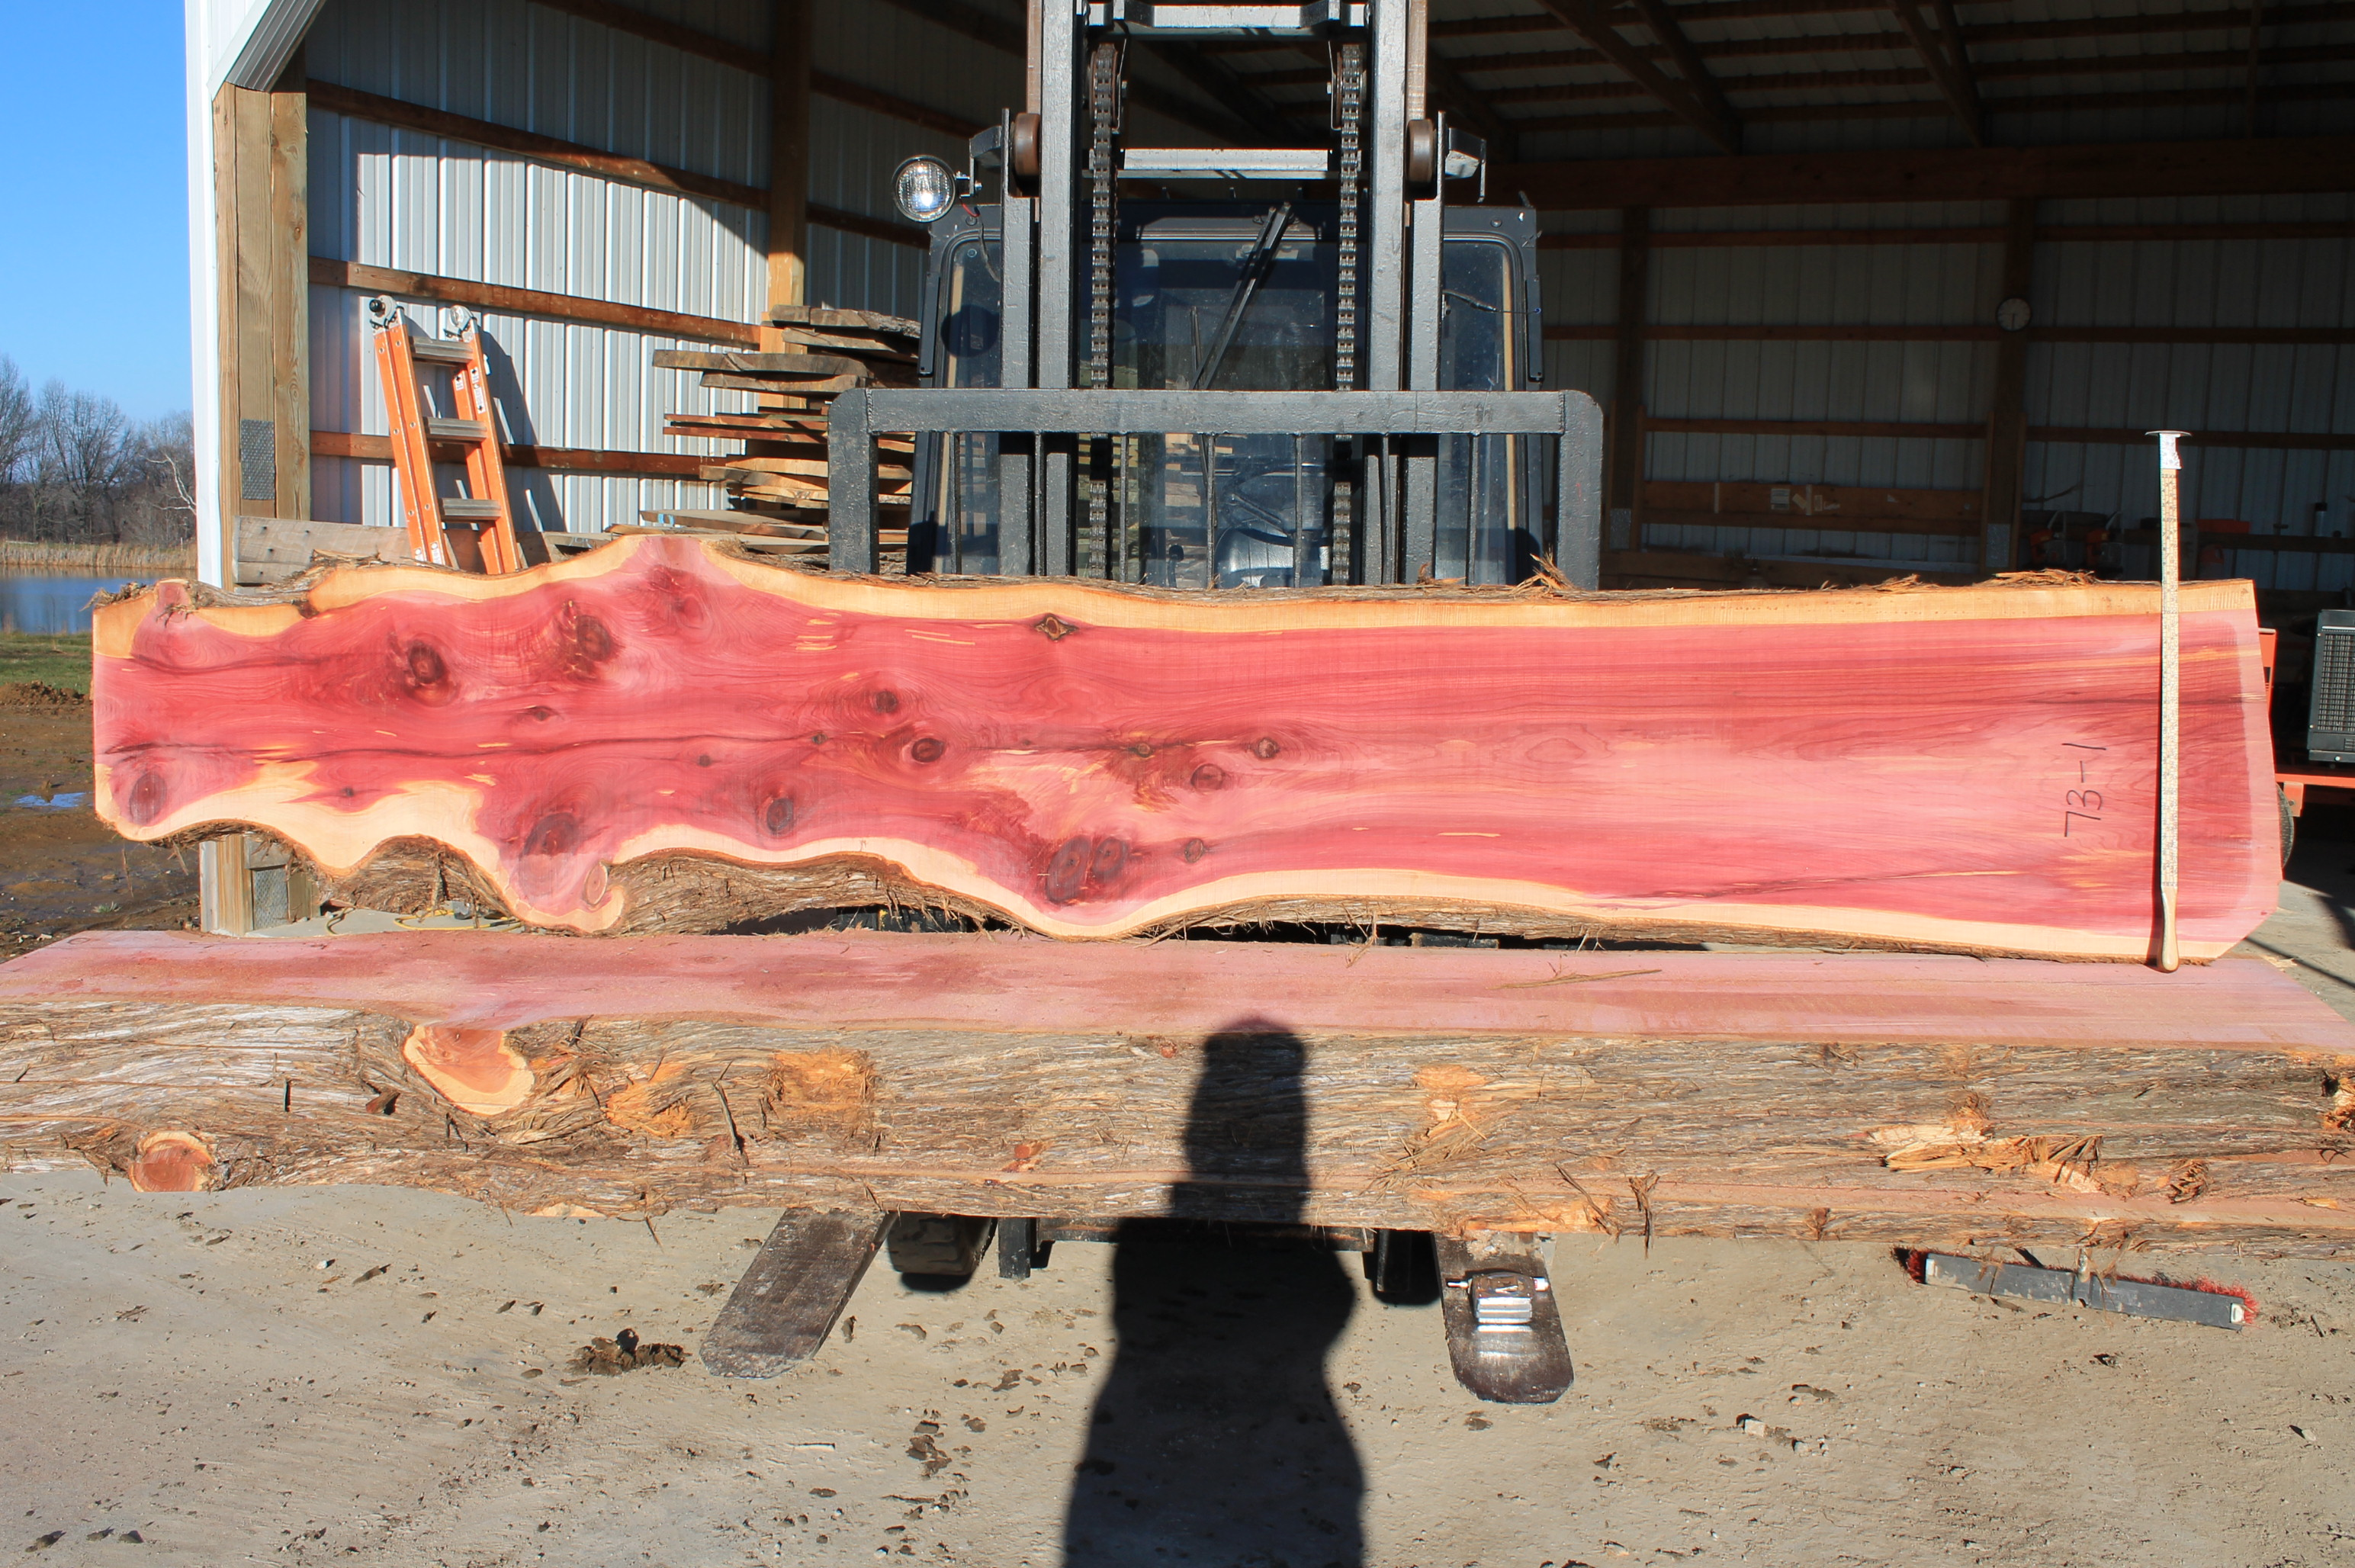 Western red cedar table top western red cedar live edge table top - 73 1 Aromatic Red Cedar Jpg